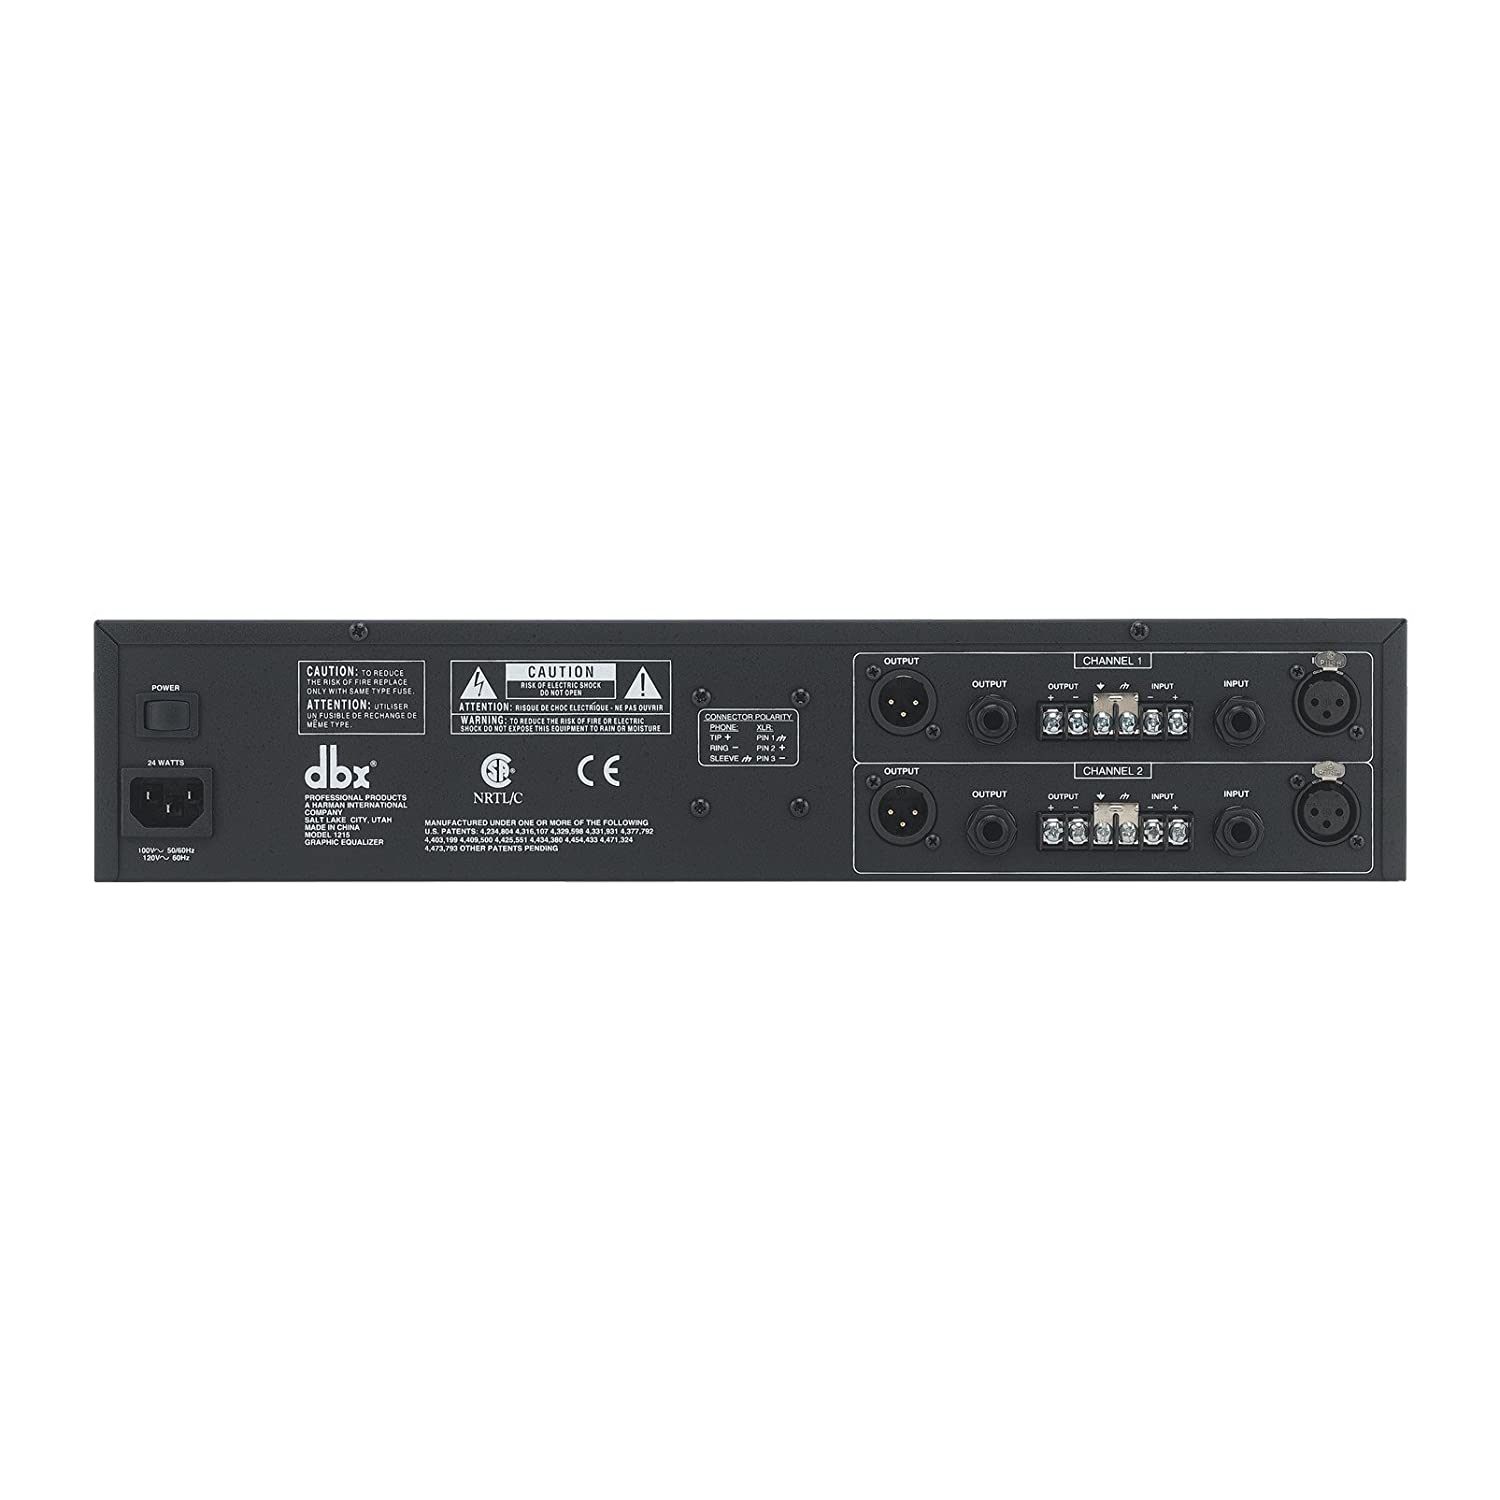 DBX 1215 Dual 15 Band Graphic Equalizer